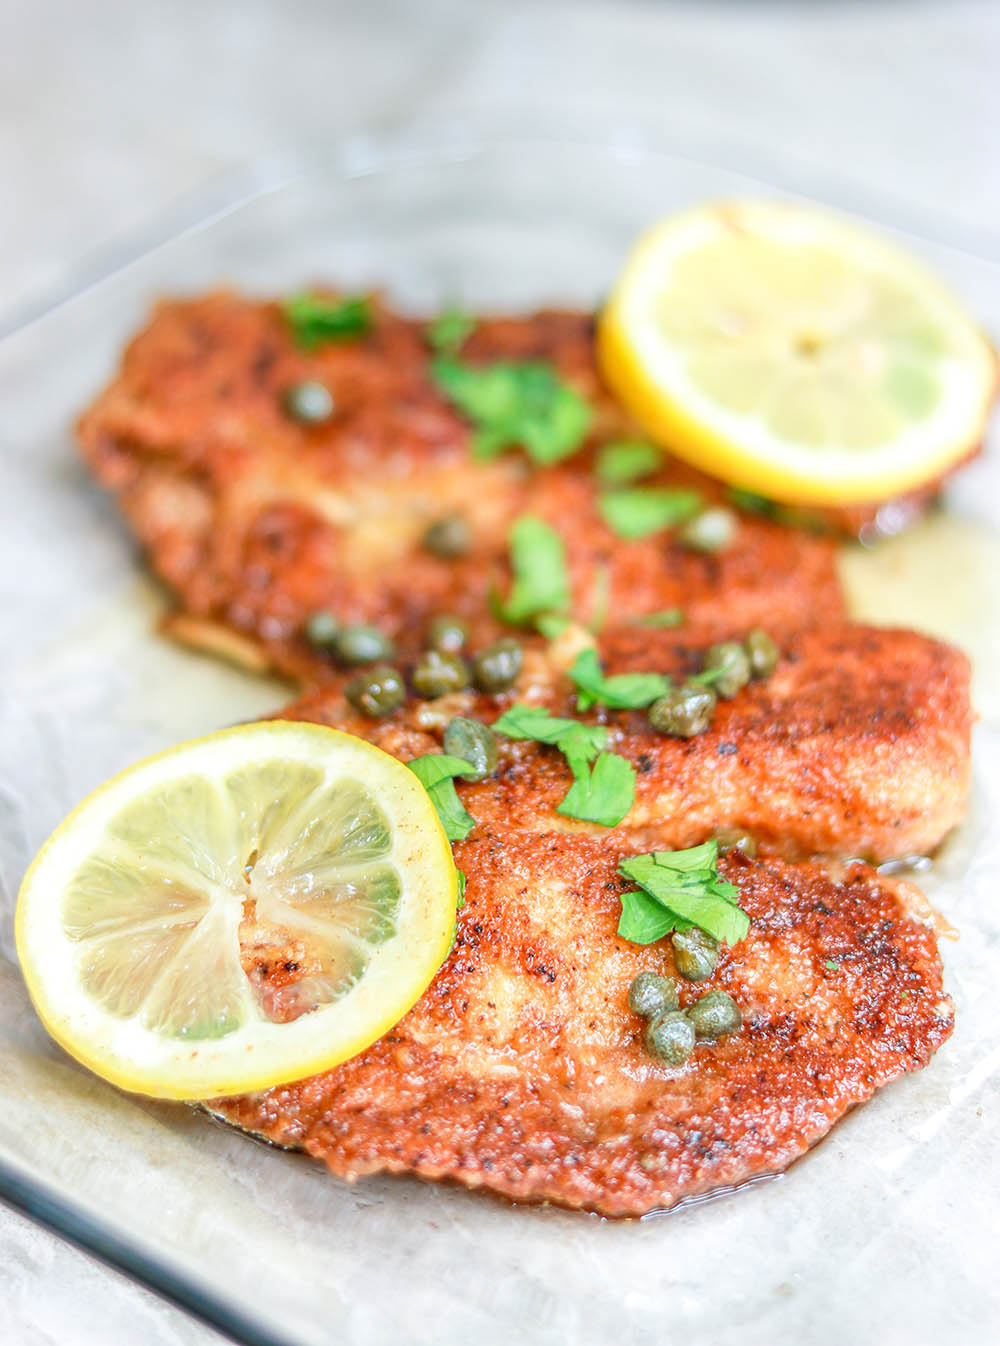 Keto Fy Me Cut Carbs Not Flavor Keto Fried Tilapia With Lemon Garlic Butter Sauce Gluten Free